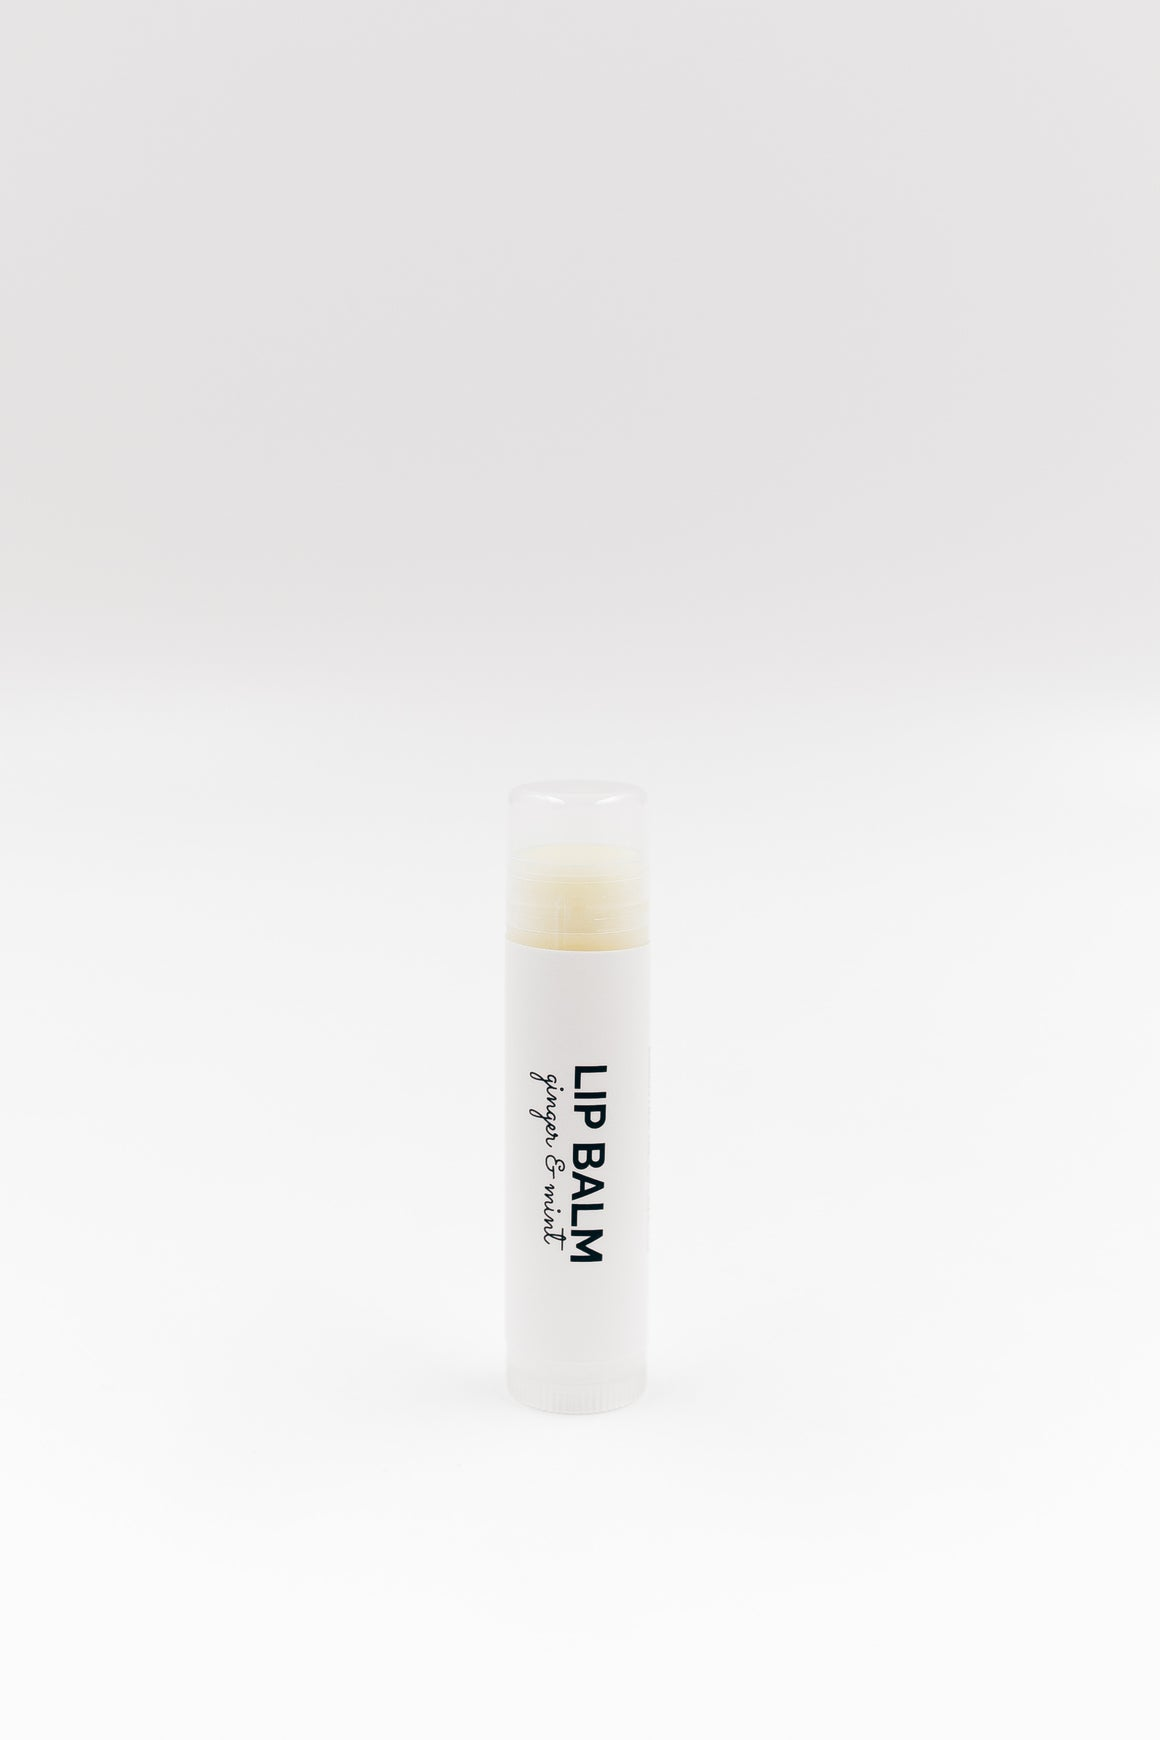 Lip Balm ~ 3 Scents Available